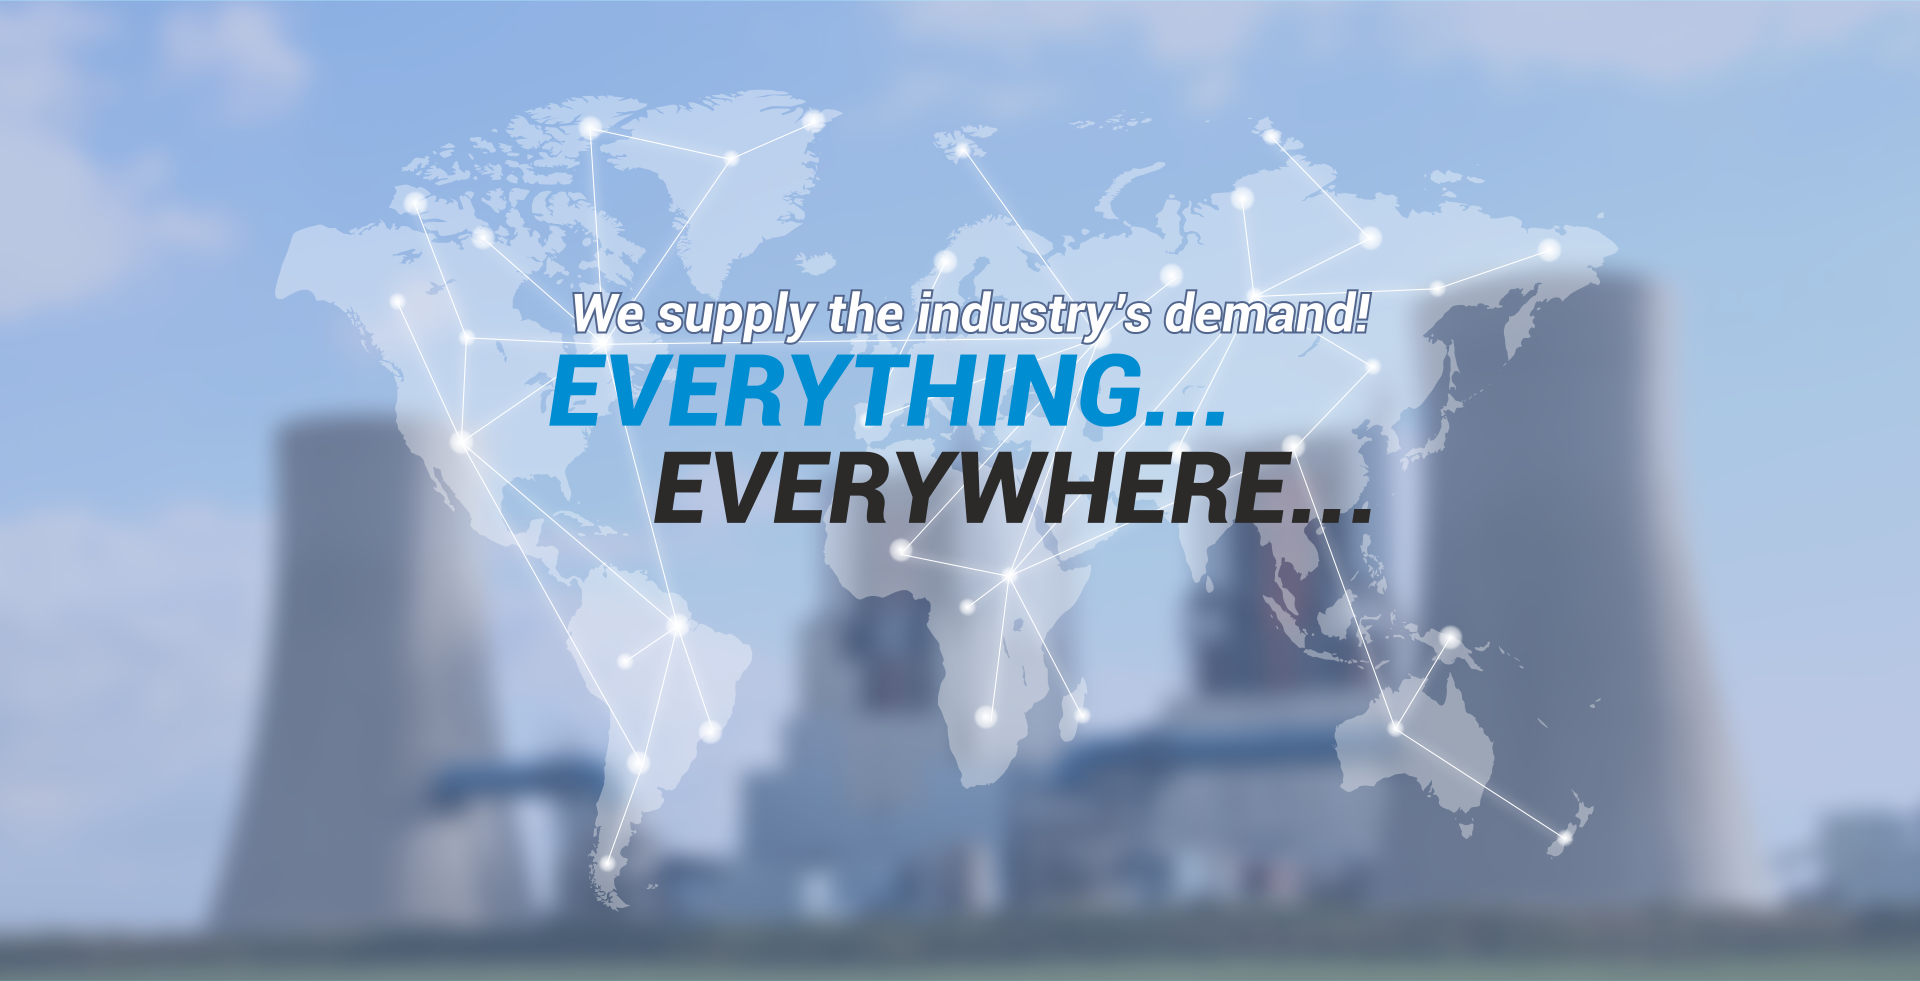 We supply the industry's demand! Everything... Everywhere...